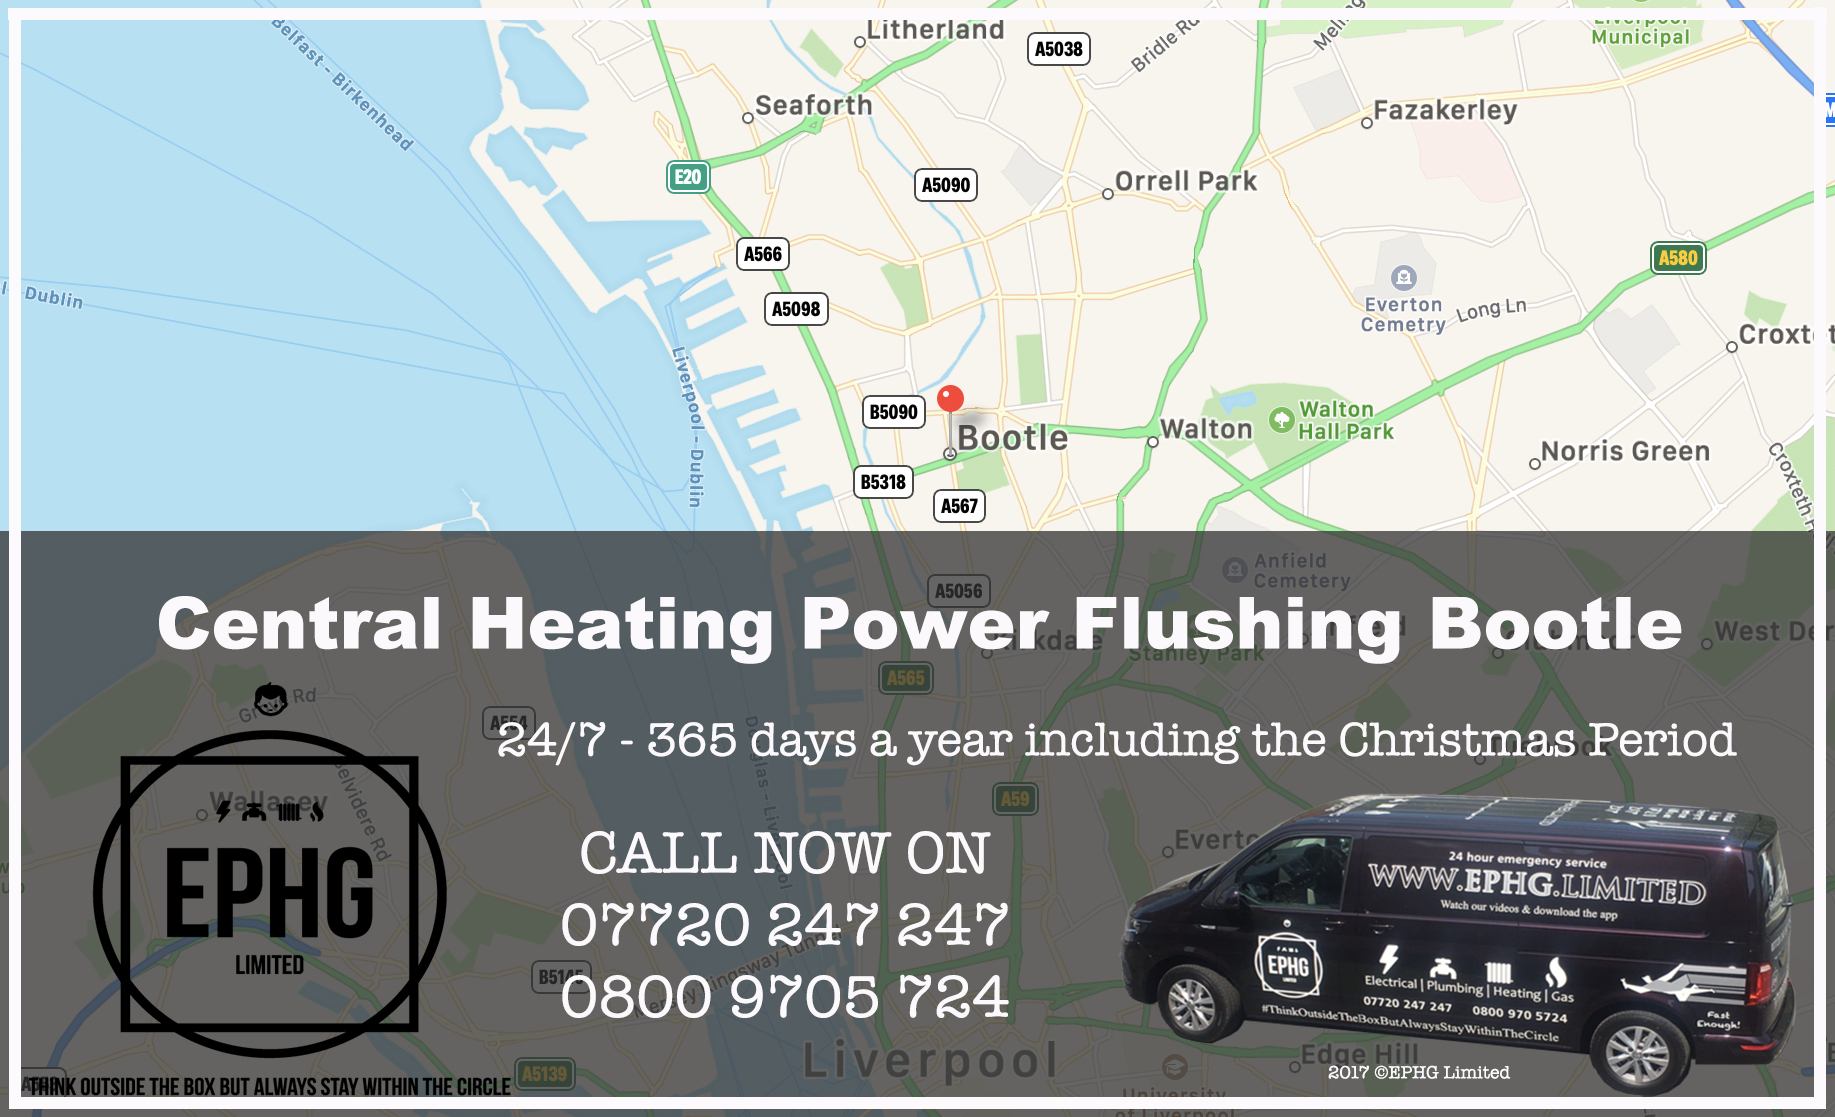 Central Heating Power Flush Bootle